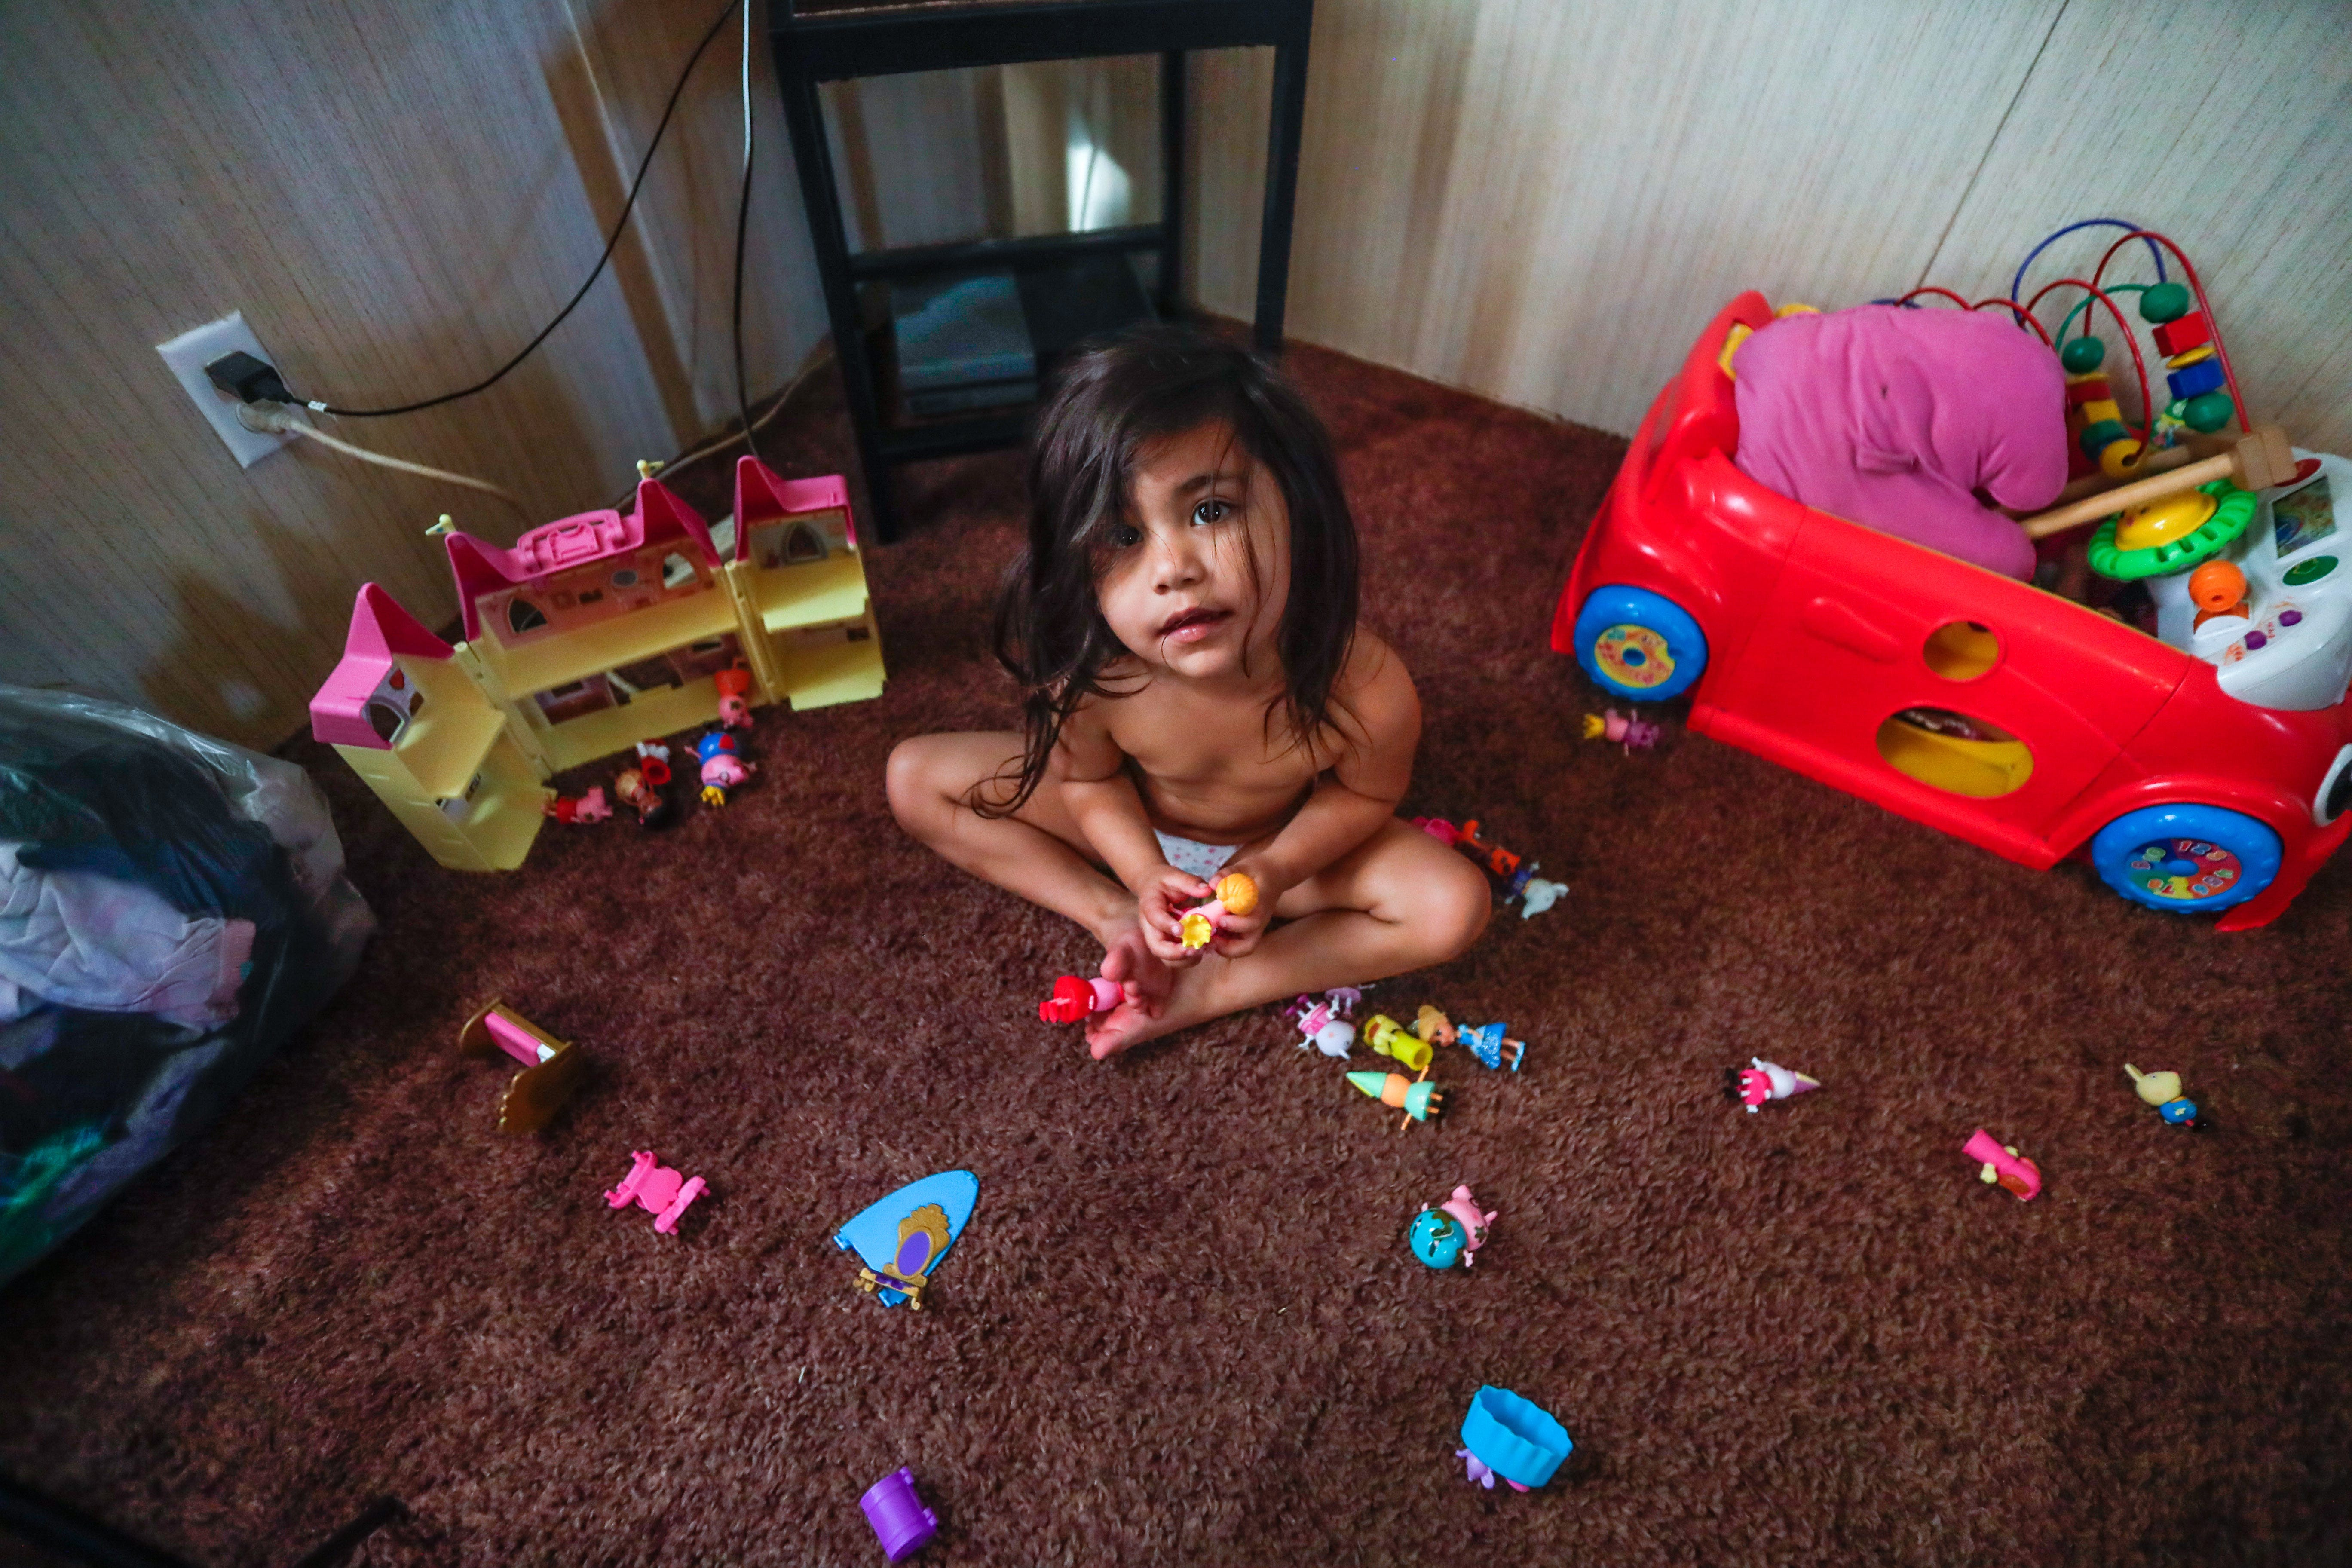 Victoria, 3, looks up from her toys on the living room floor of her family's mobile home off Aenon Church Road.